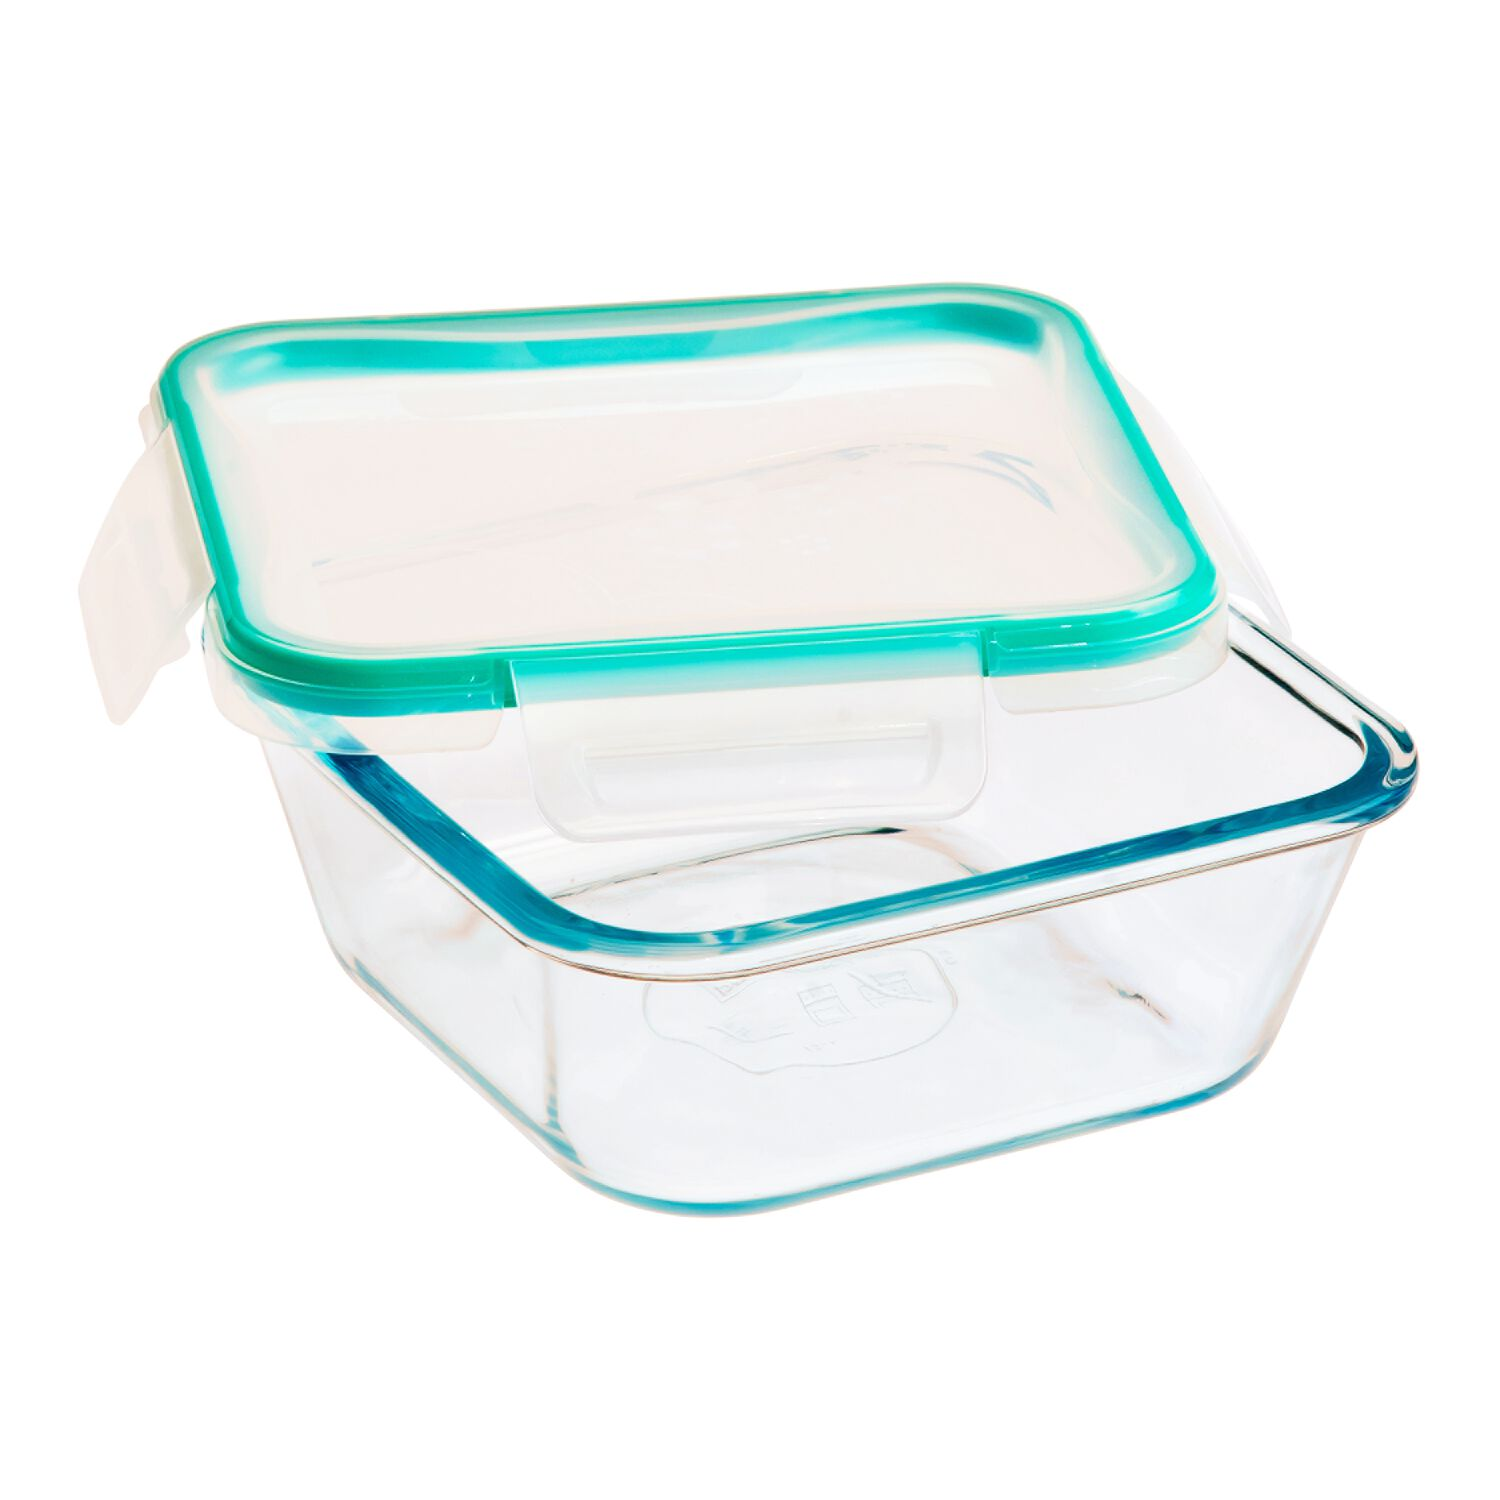 Snapware 174 Total Solution Pyrex 174 Glass Food Storage 4 Cup